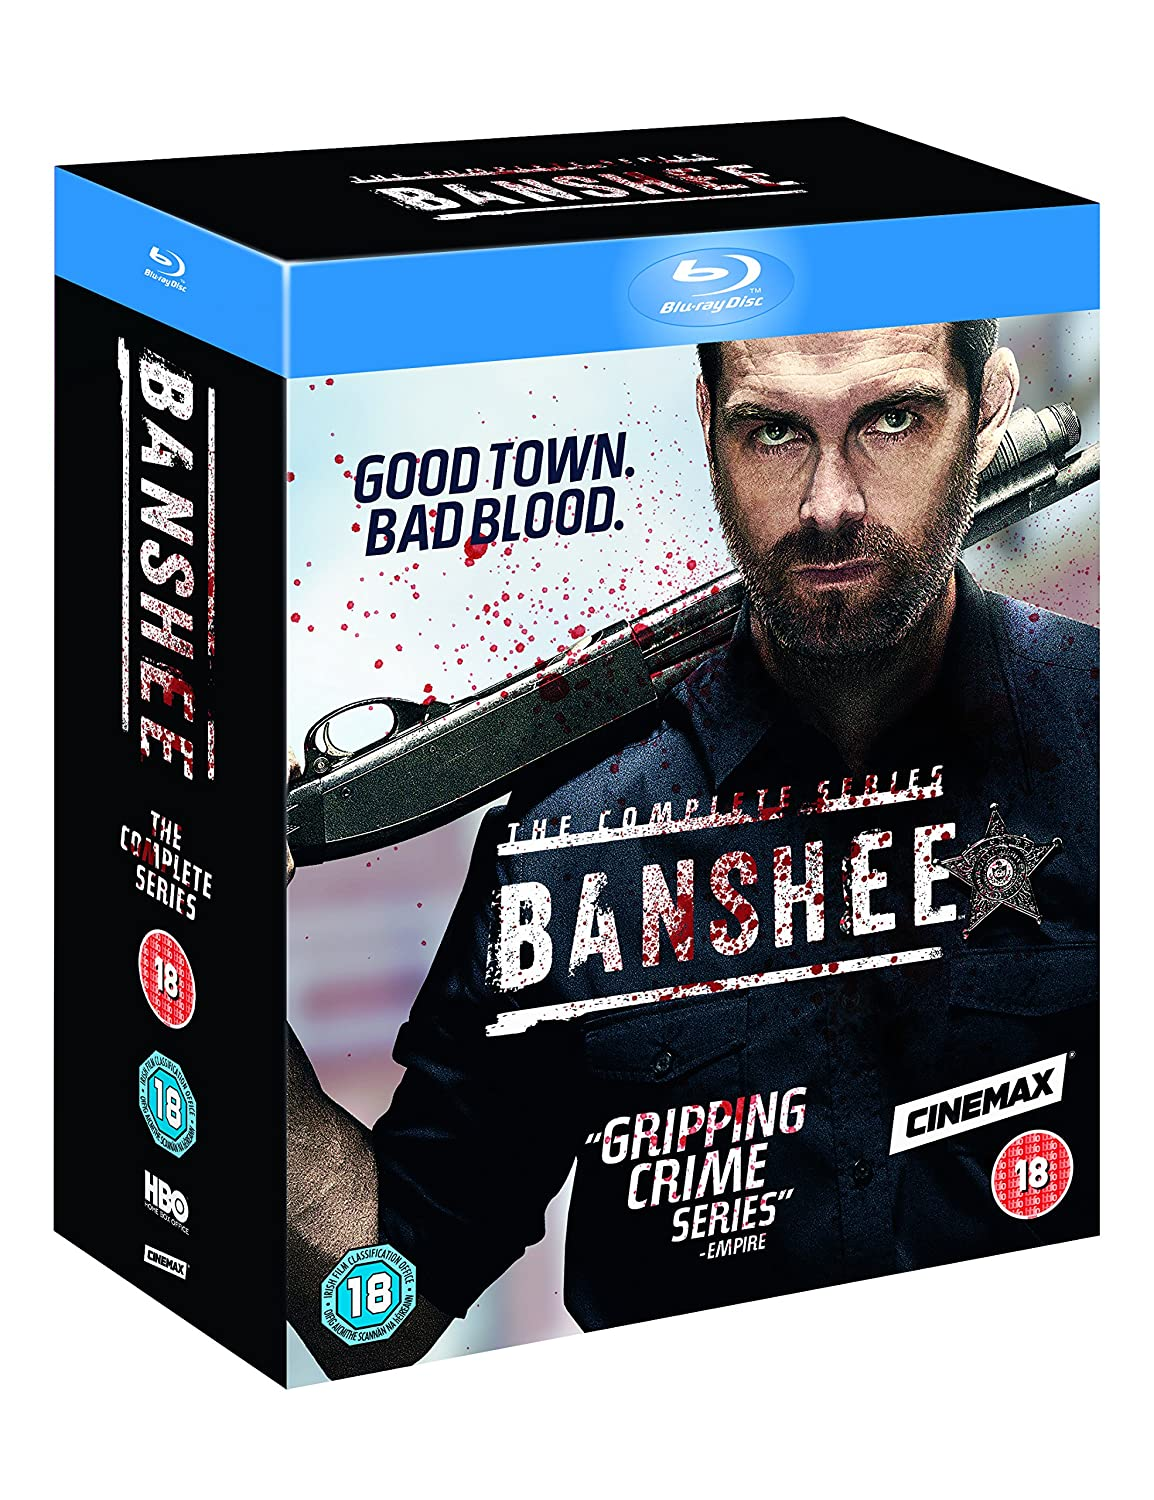 Banshee Series Was Filmed Where on where was buried, where was shot, where was first, where was movie, where was this, where was cute,